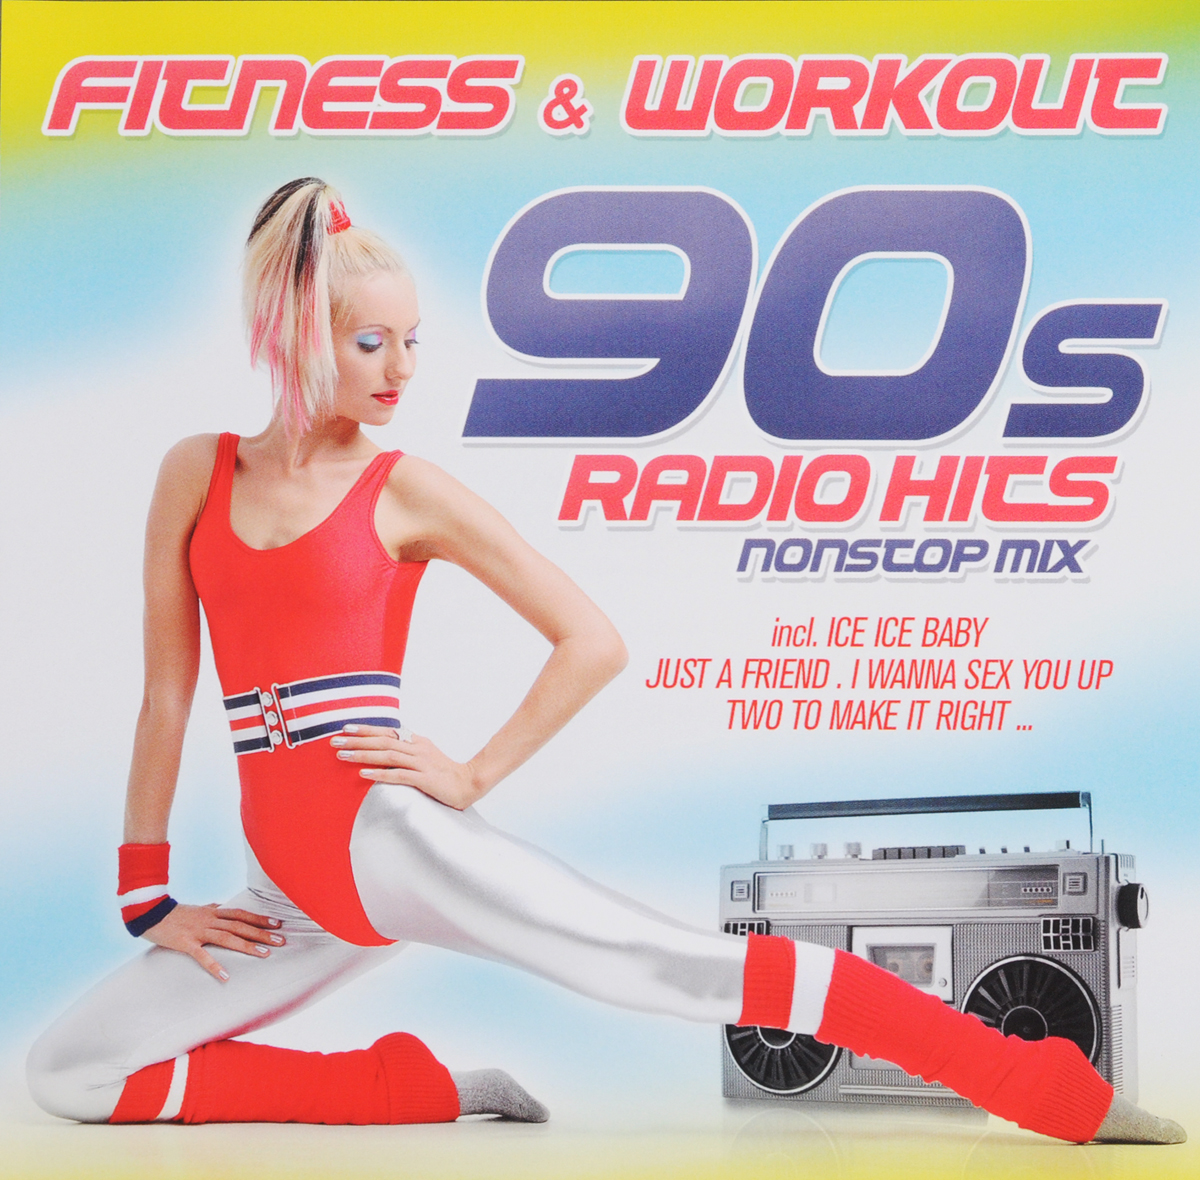 Fitness & Workout: 90s Radio Hits